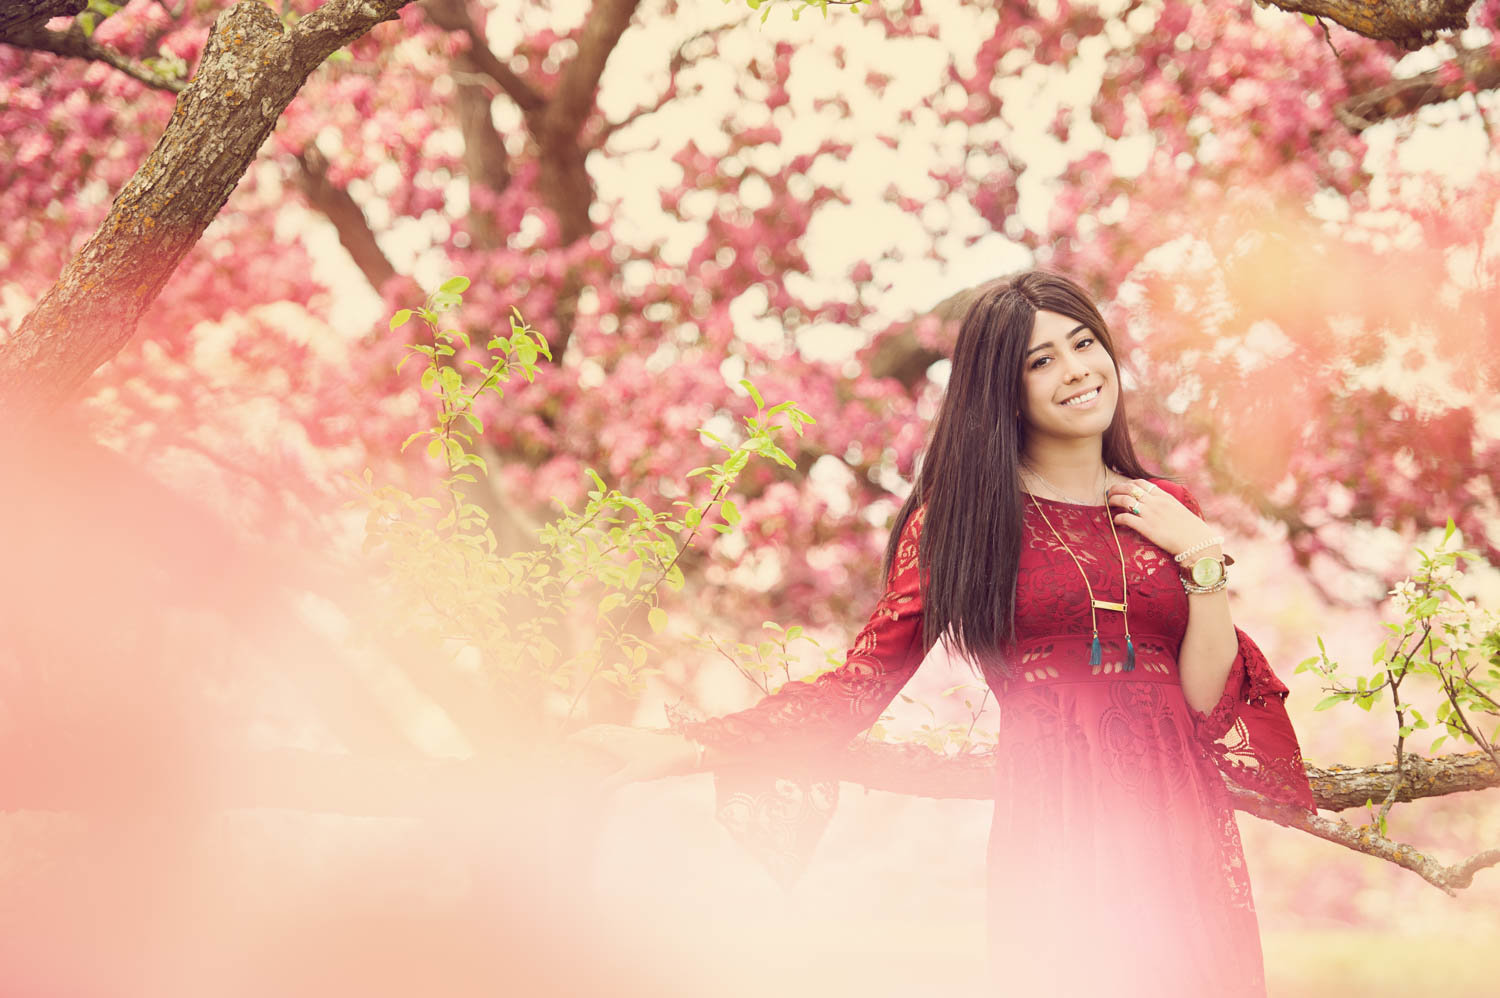 Colorful senior picture of girl with apple blossom trees